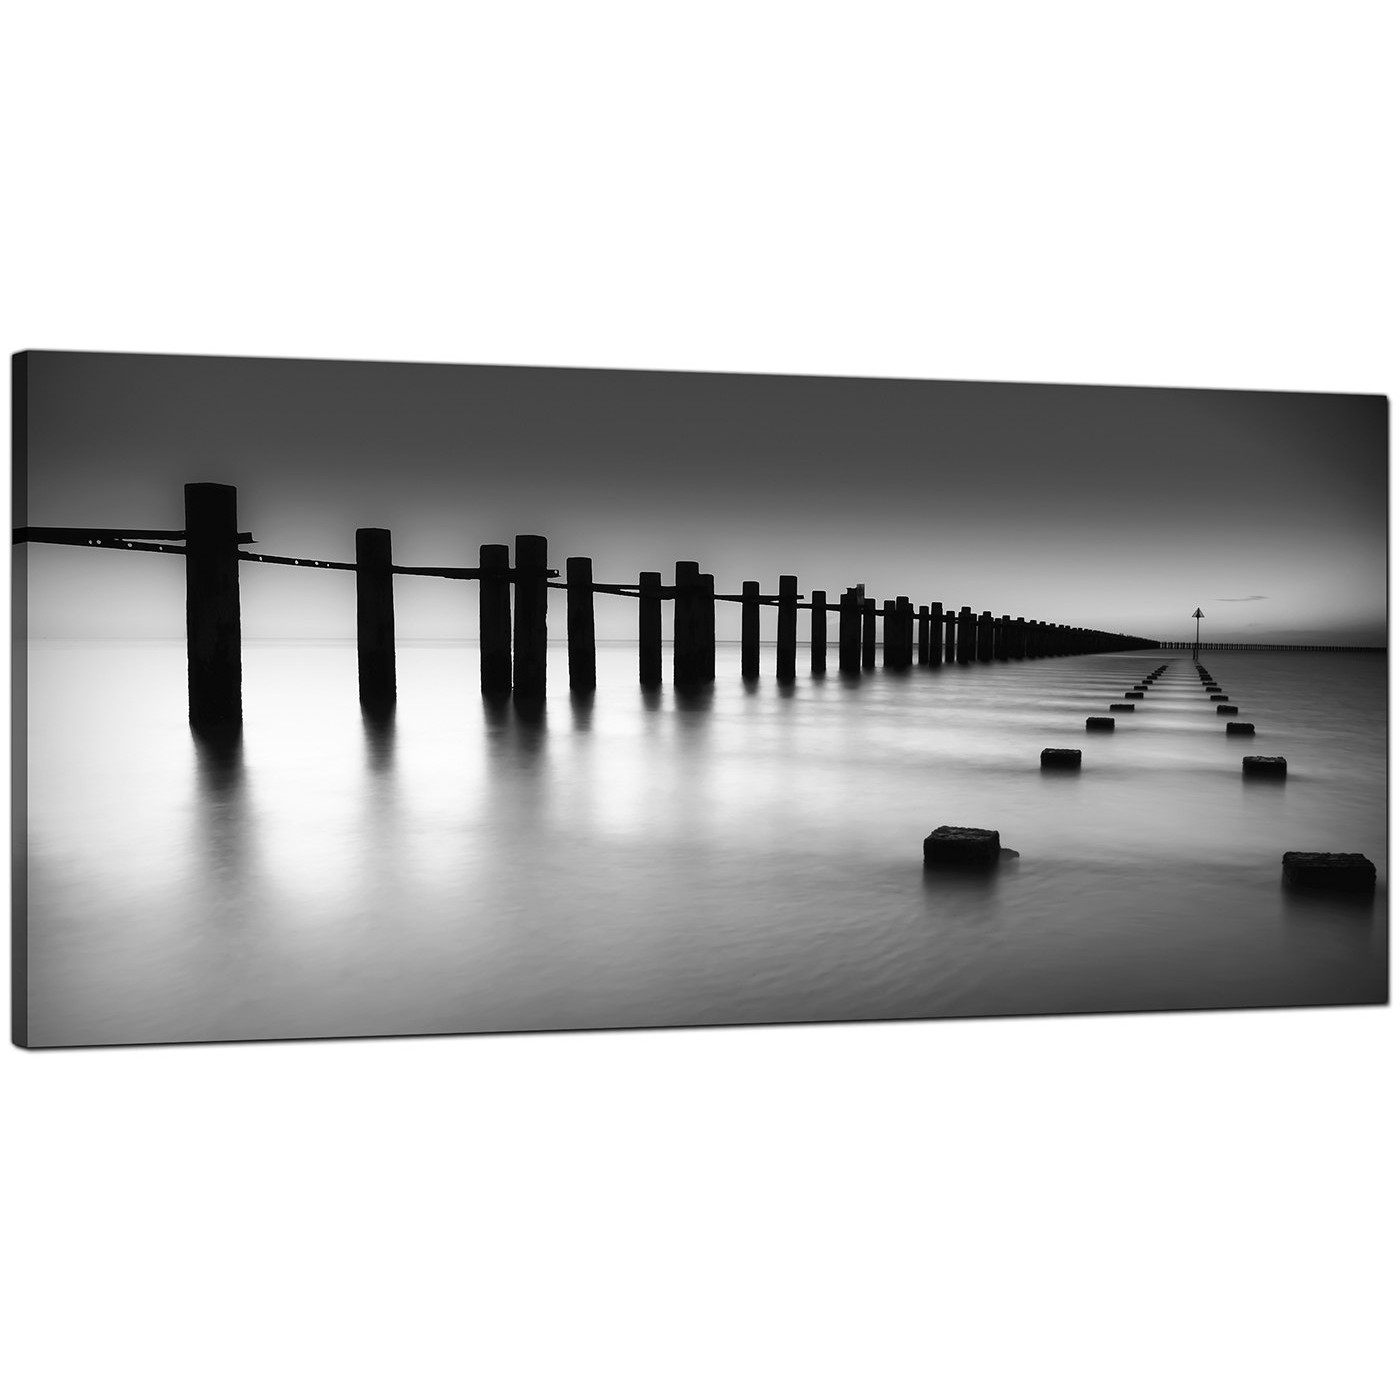 Modern Black And White Canvas Art Of The Sea With Regard To Current Black And White Photography Canvas Wall Art (View 12 of 15)